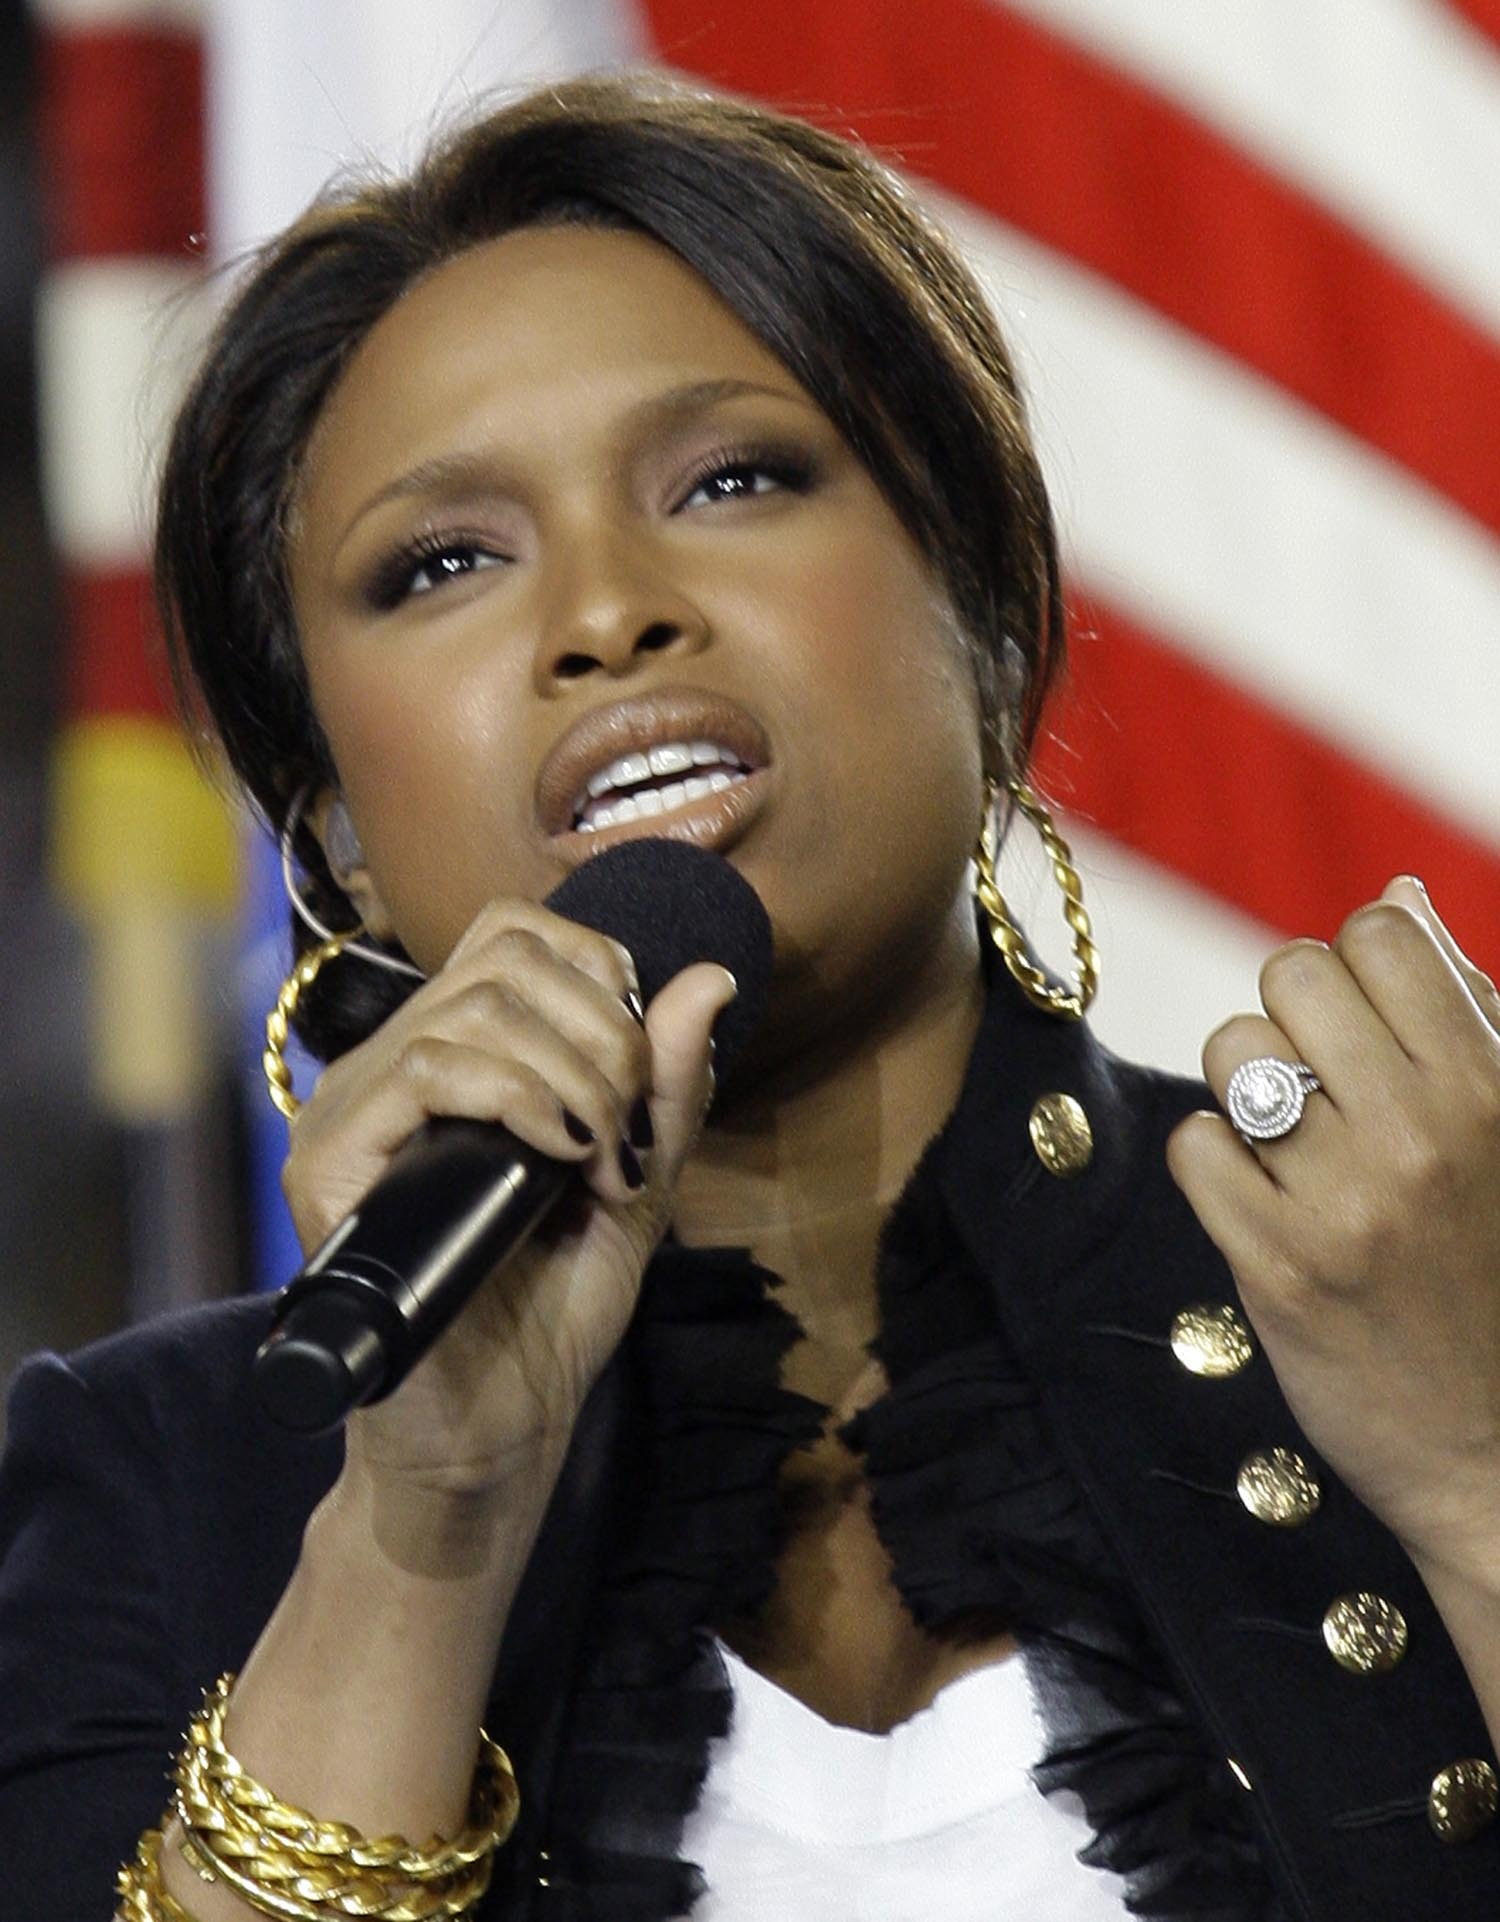 <div class='meta'><div class='origin-logo' data-origin='AP'></div><span class='caption-text' data-credit='AP Photo/David J. Phillip'>2009: Jennifer Hudson sings the national anthem before the the NFL Super Bowl XLIII football game between the Arizona Cardinals and the Pittsburgh Steelers, Sunday, Feb. 1, 2009.</span></div>